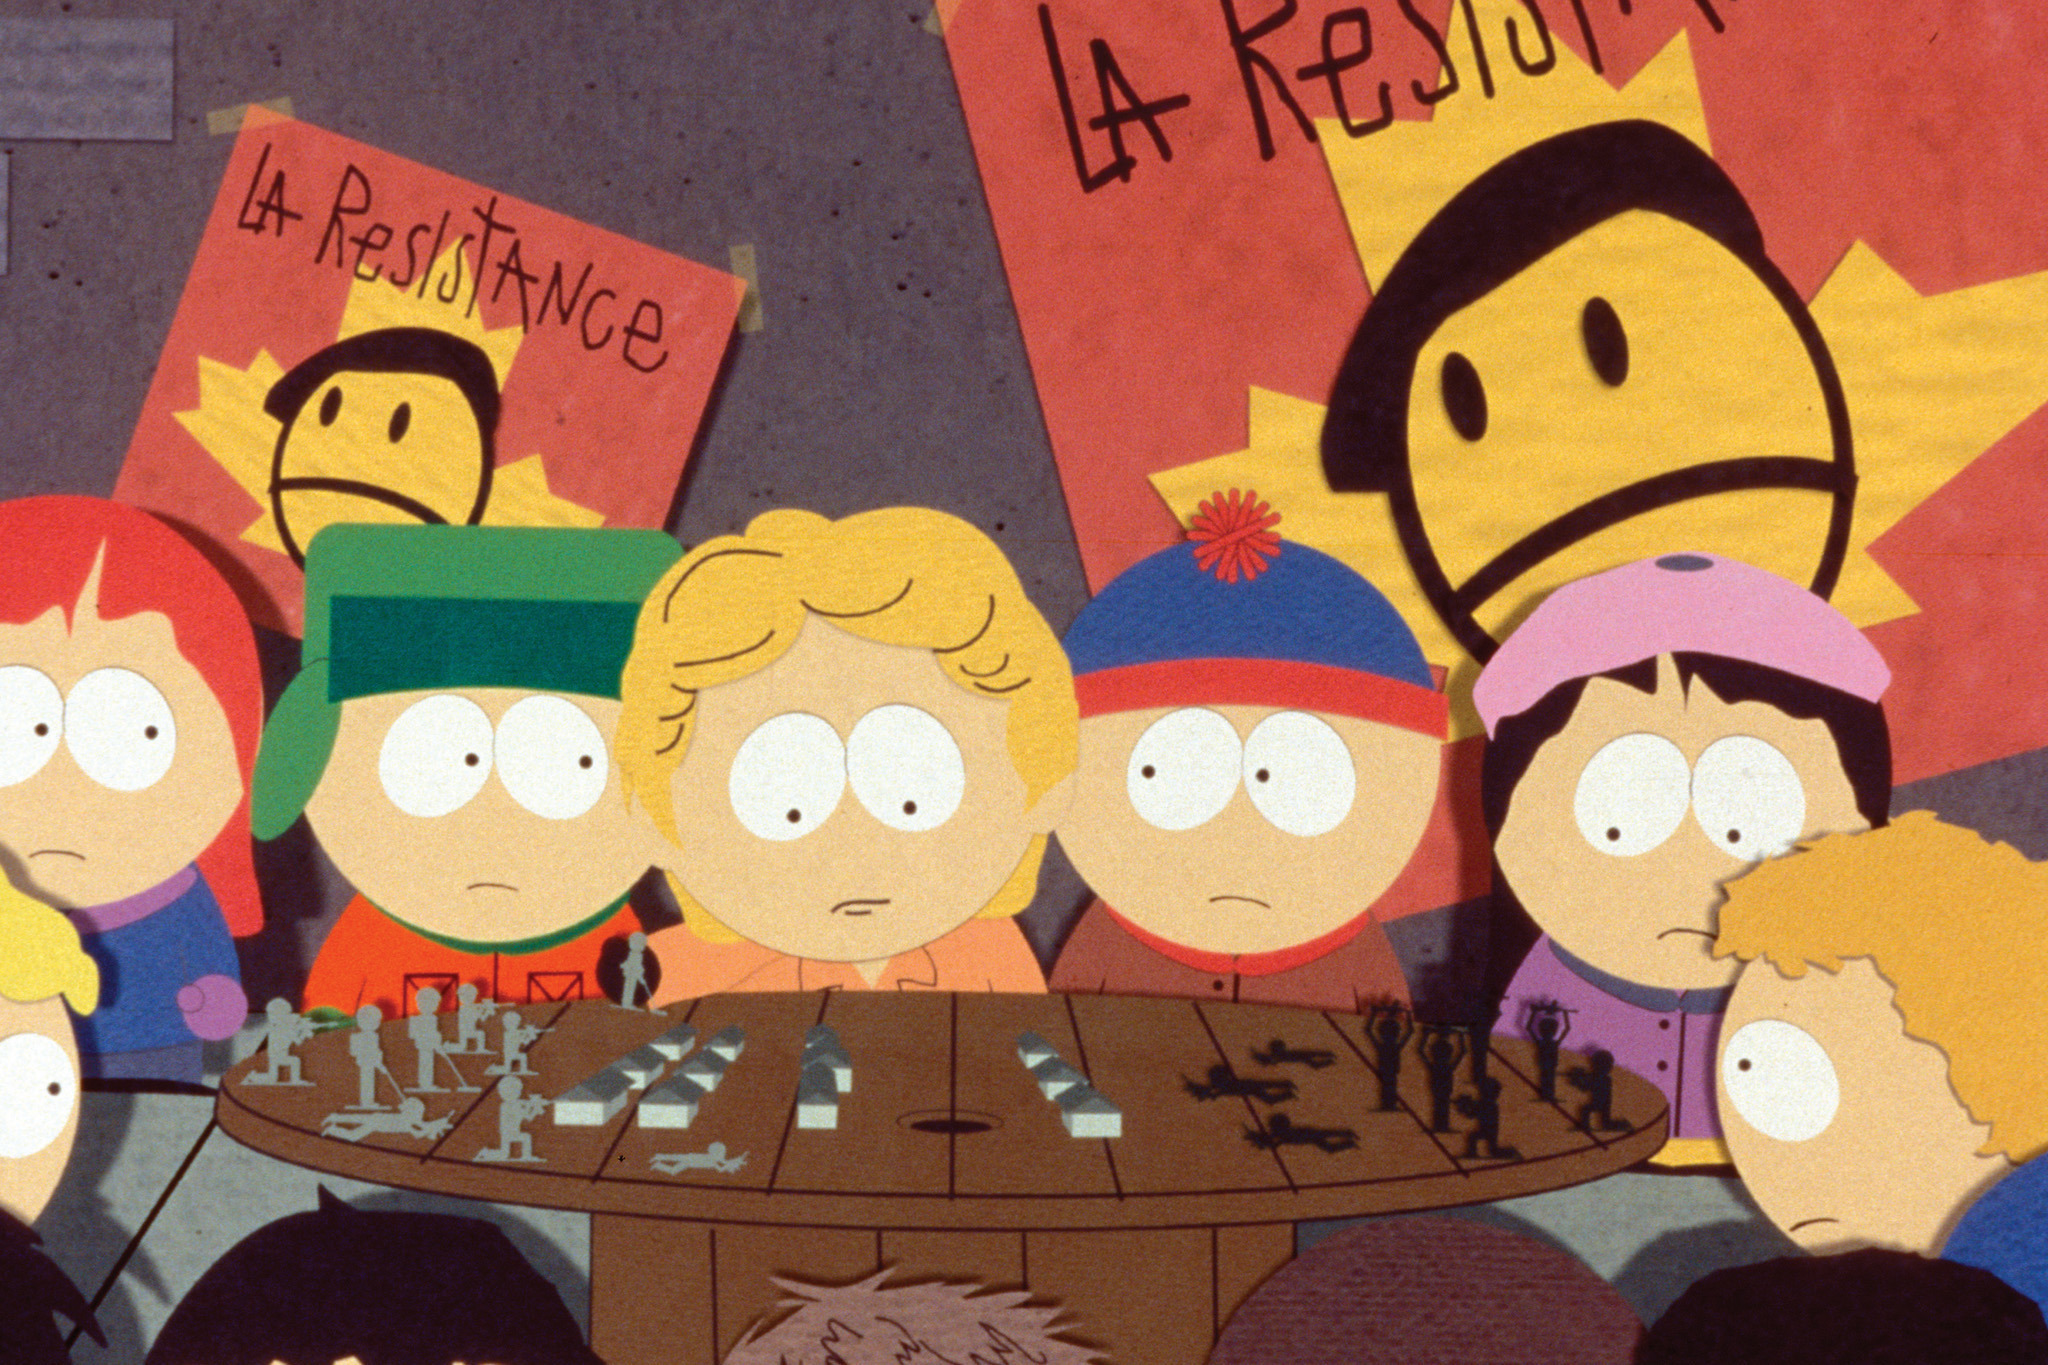 South Park: Bigger, Longer & Uncut (1999)